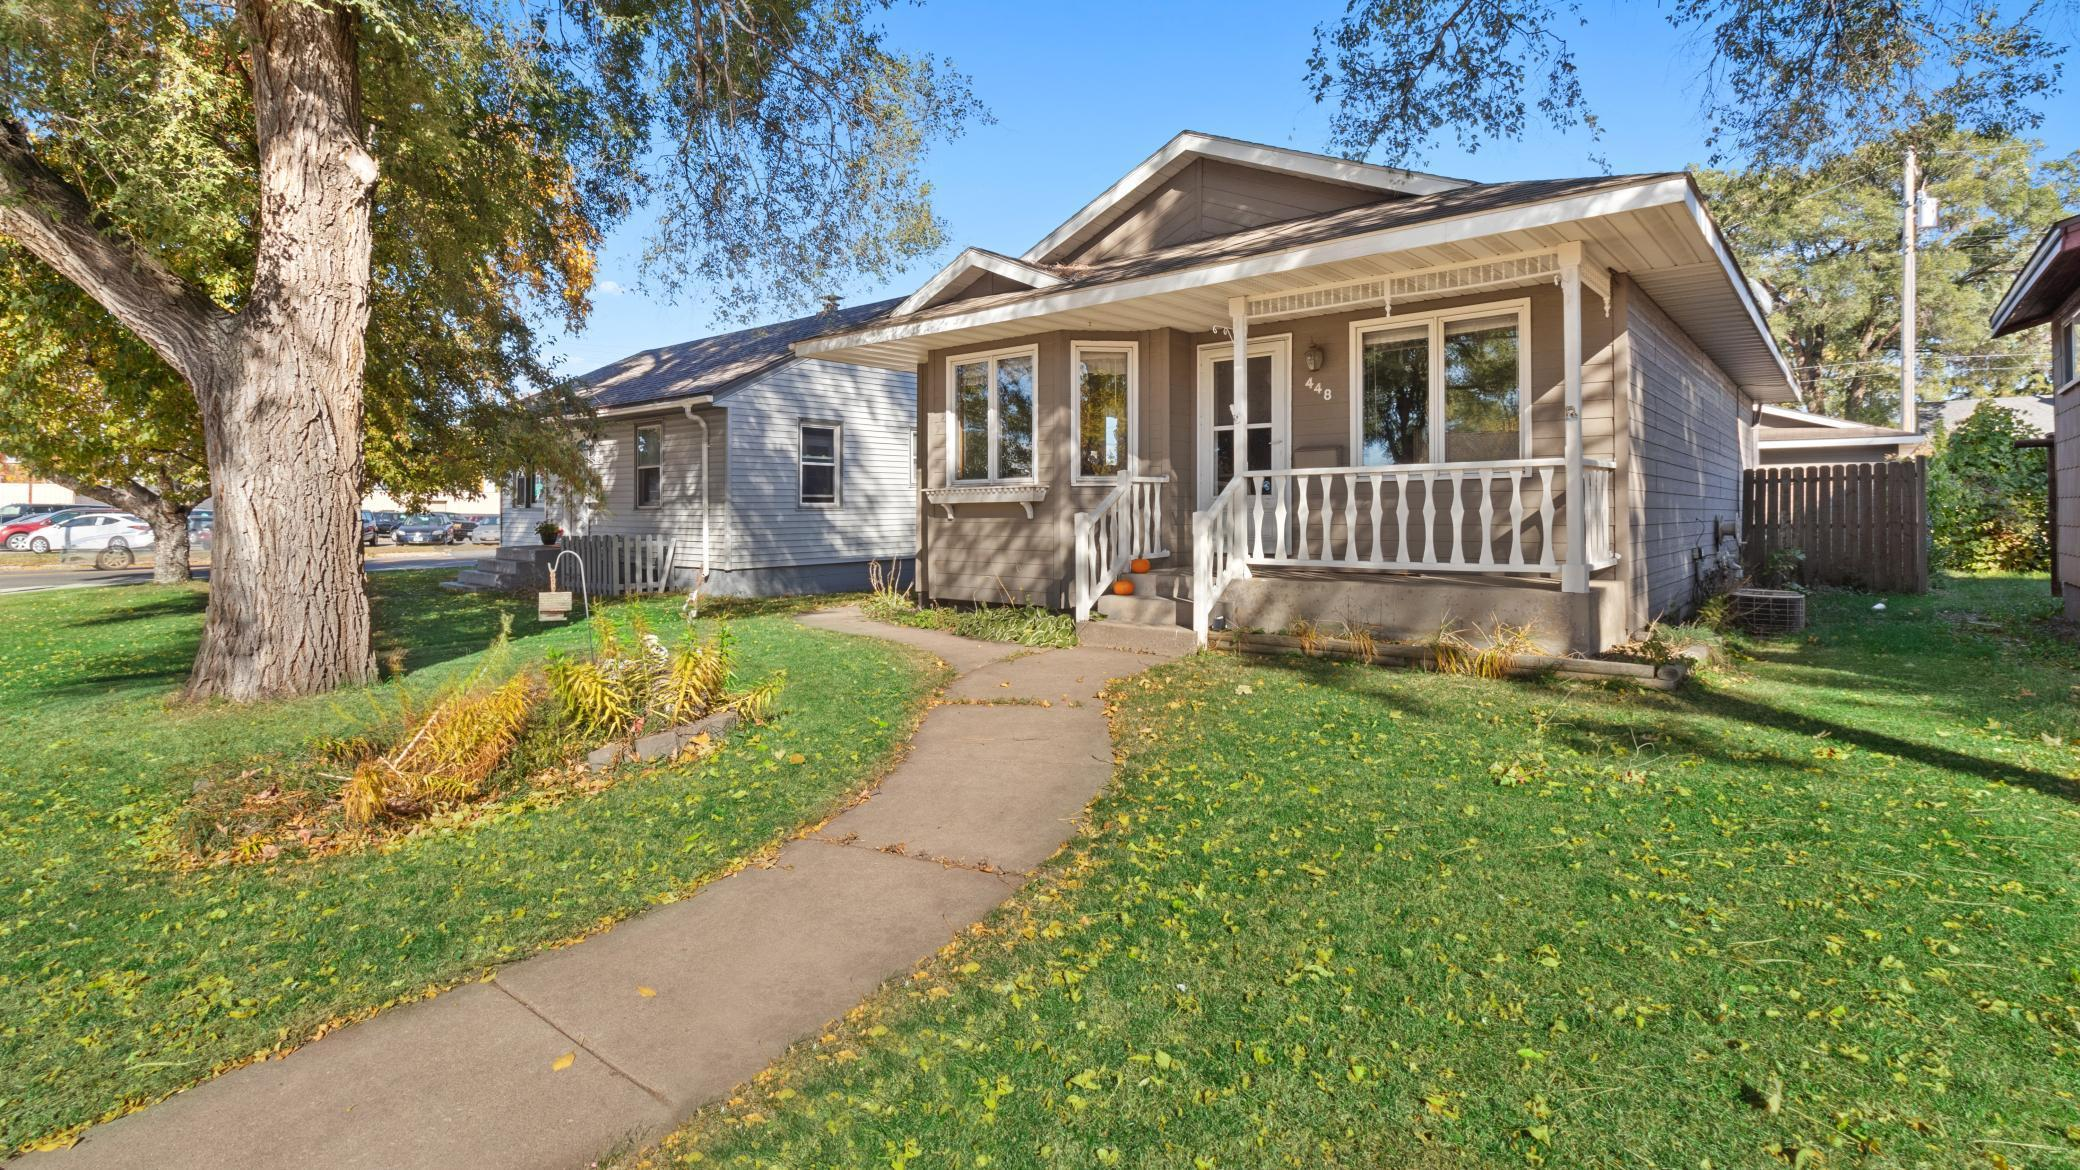 4 bedroom, 2 bath rambler with a 2 stall garage.  Fenced in back yard. All appliances are included. Cute front porch. Very convenient location.